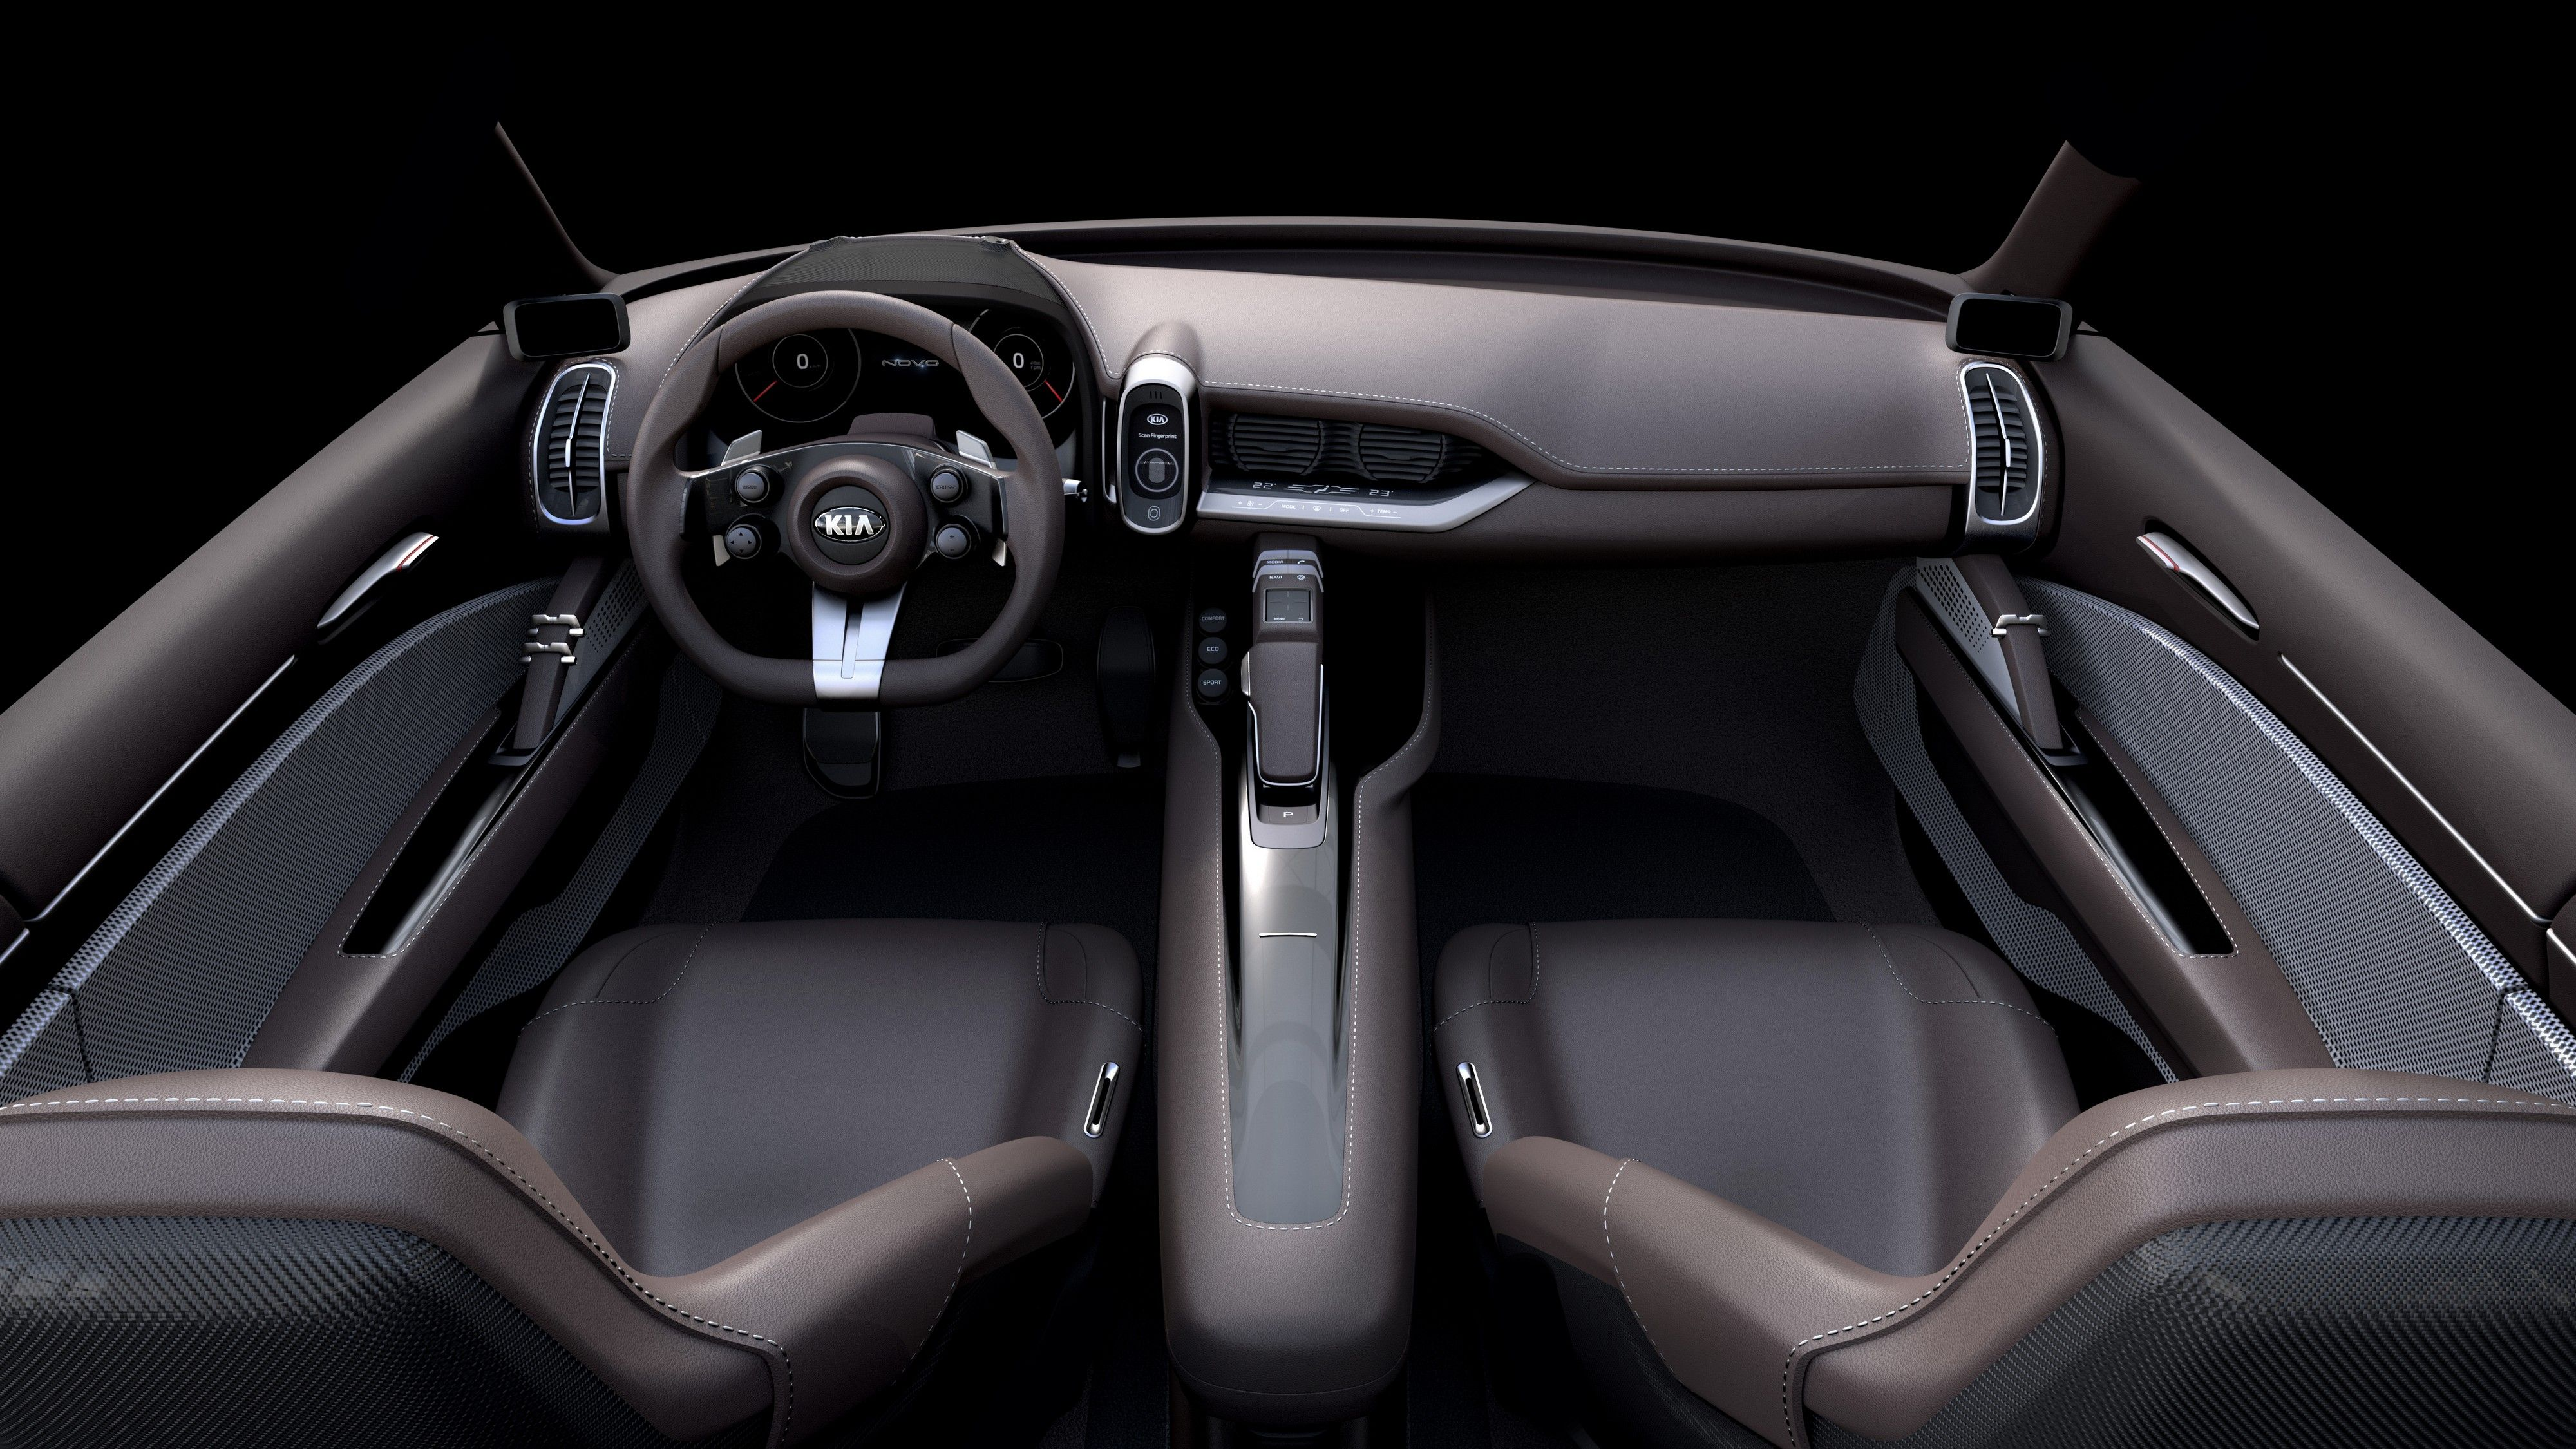 Image Result For Kia Concept Interior Interior Design Pinterest